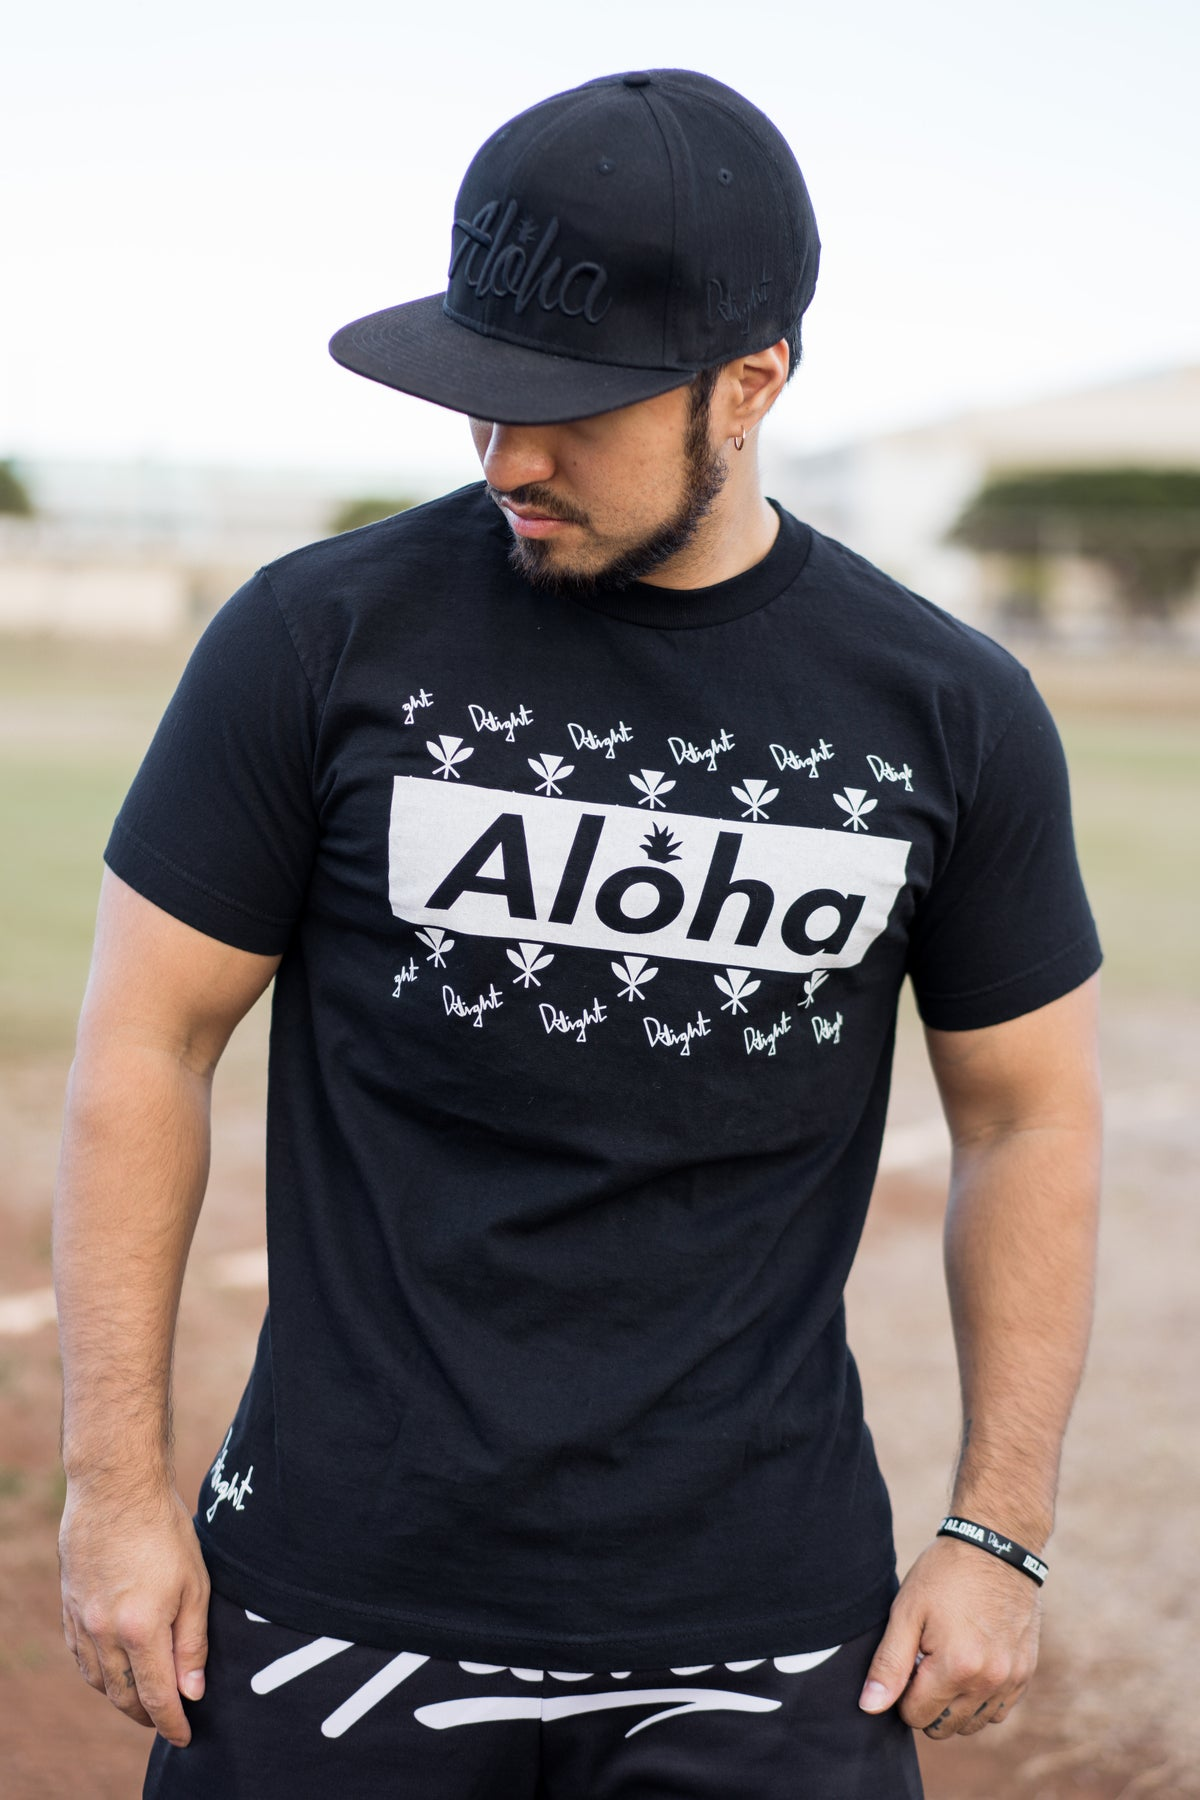 Aloha Slapped Black T-shirt